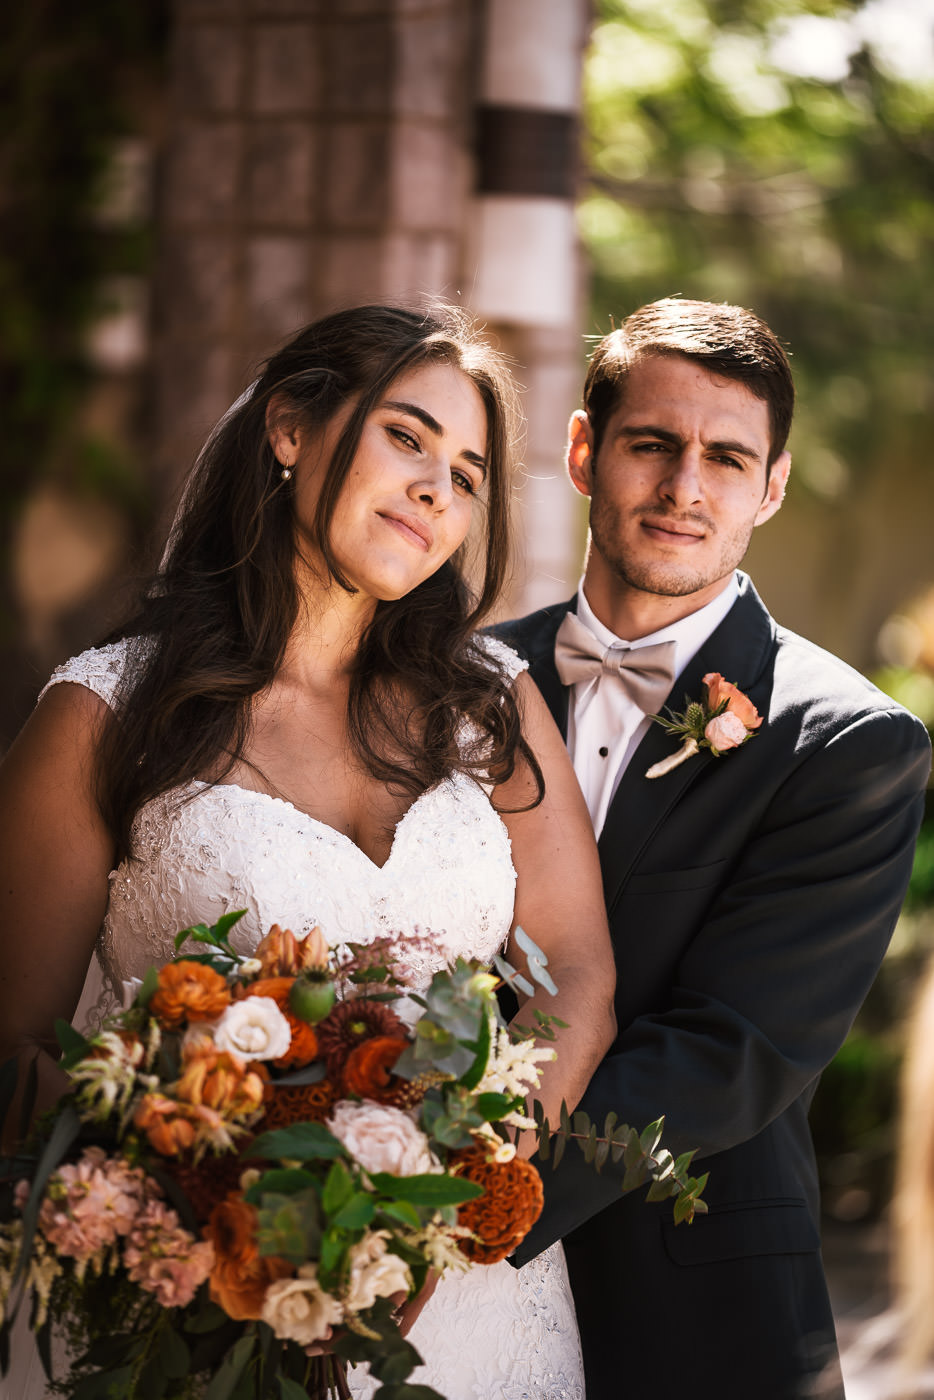 Stunning bride and groom pose to create beautiful wedding photos.